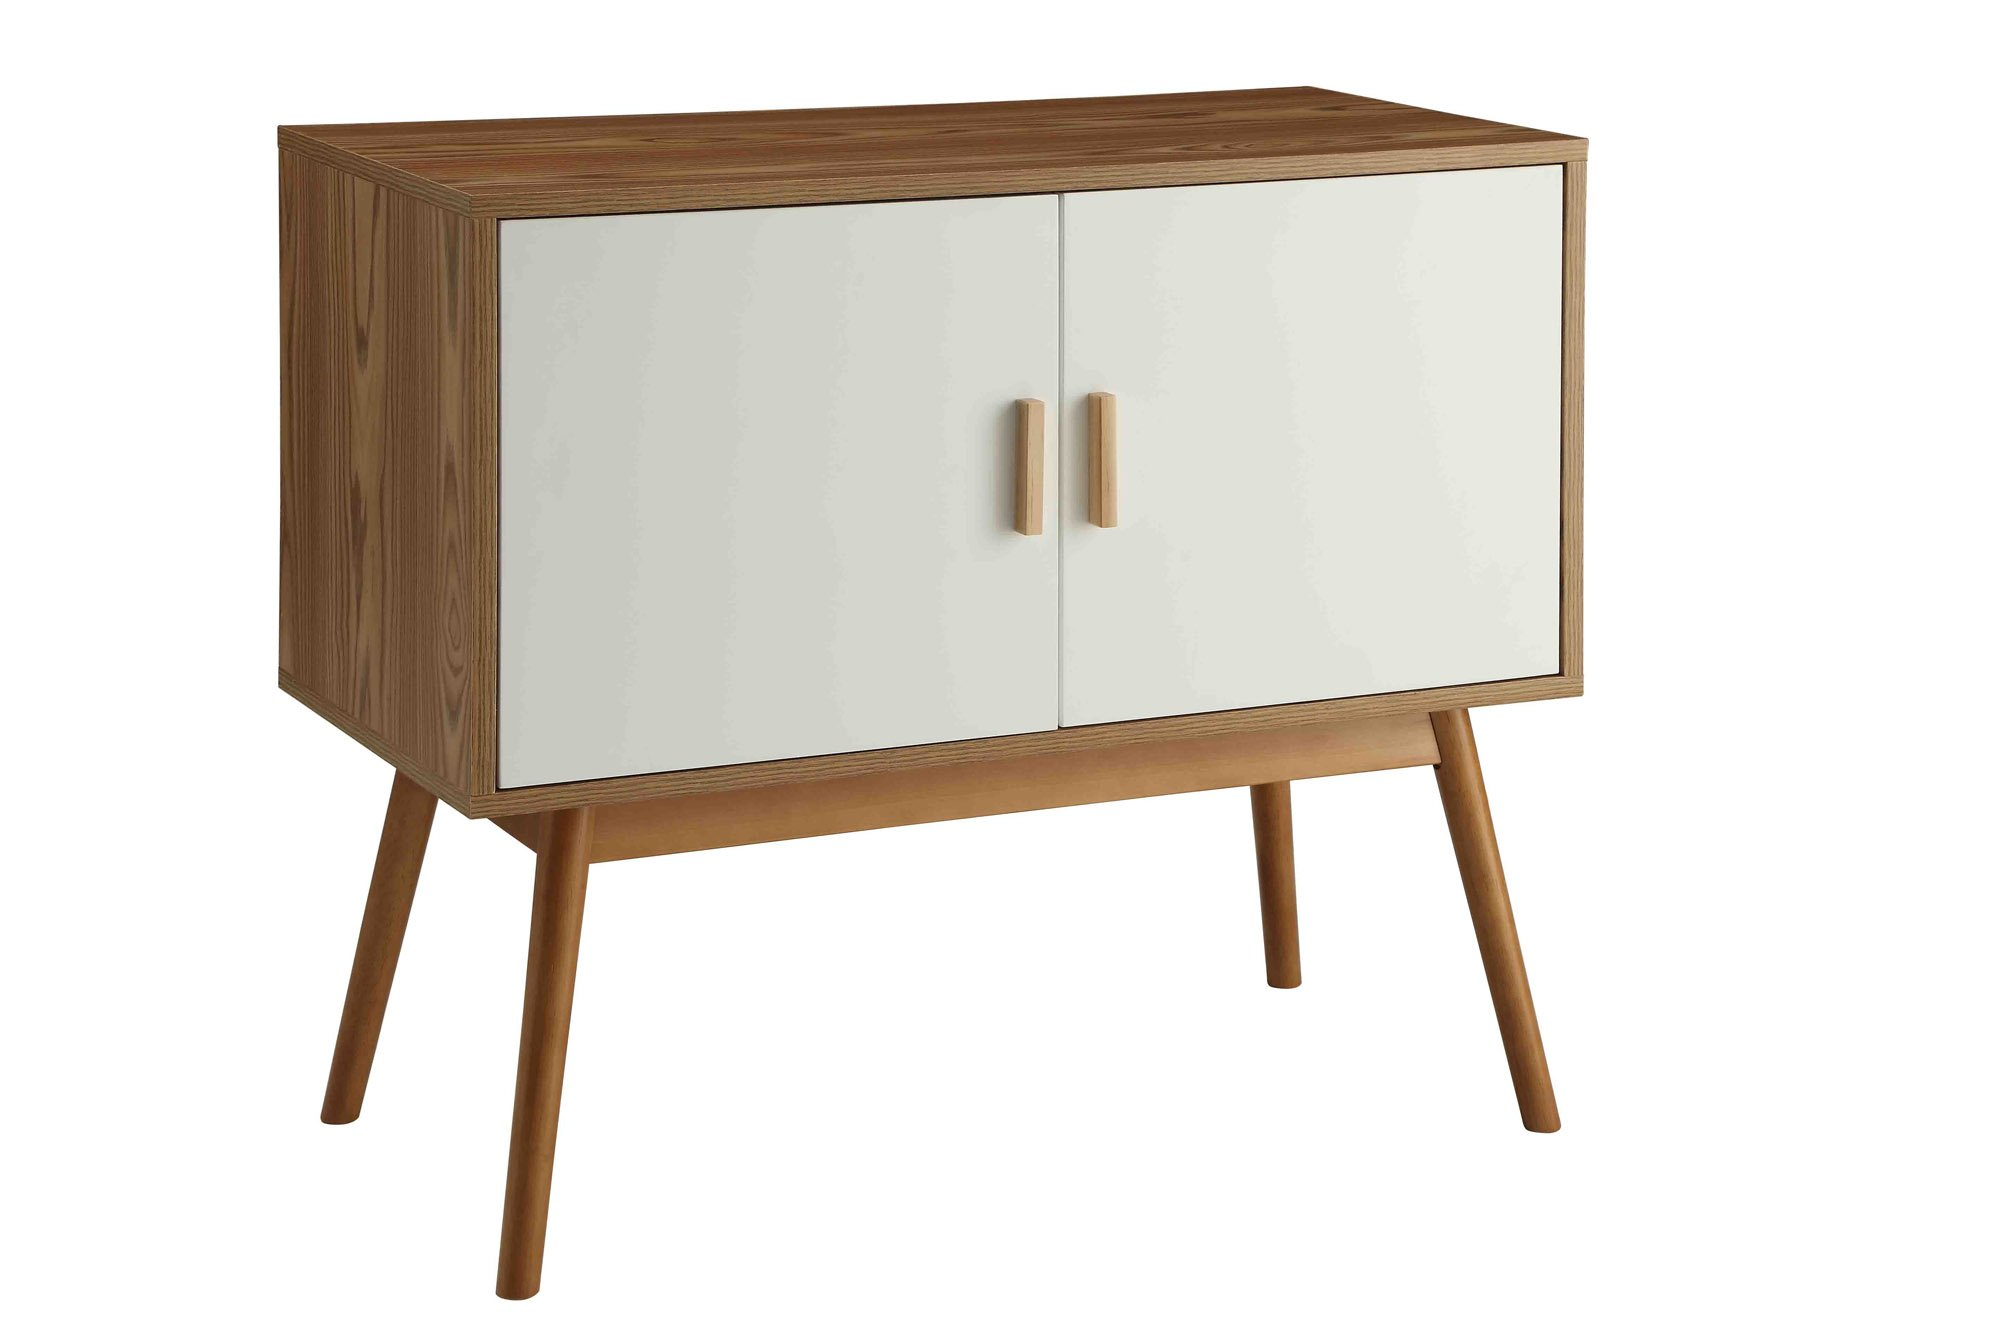 Convenience Concepts Oslo Storage Console - Two Large Cabinets with Shelf Reversible Doors Solid Wood Legs - living-room-furniture, living-room, console-tables - 61oR oq5itL -